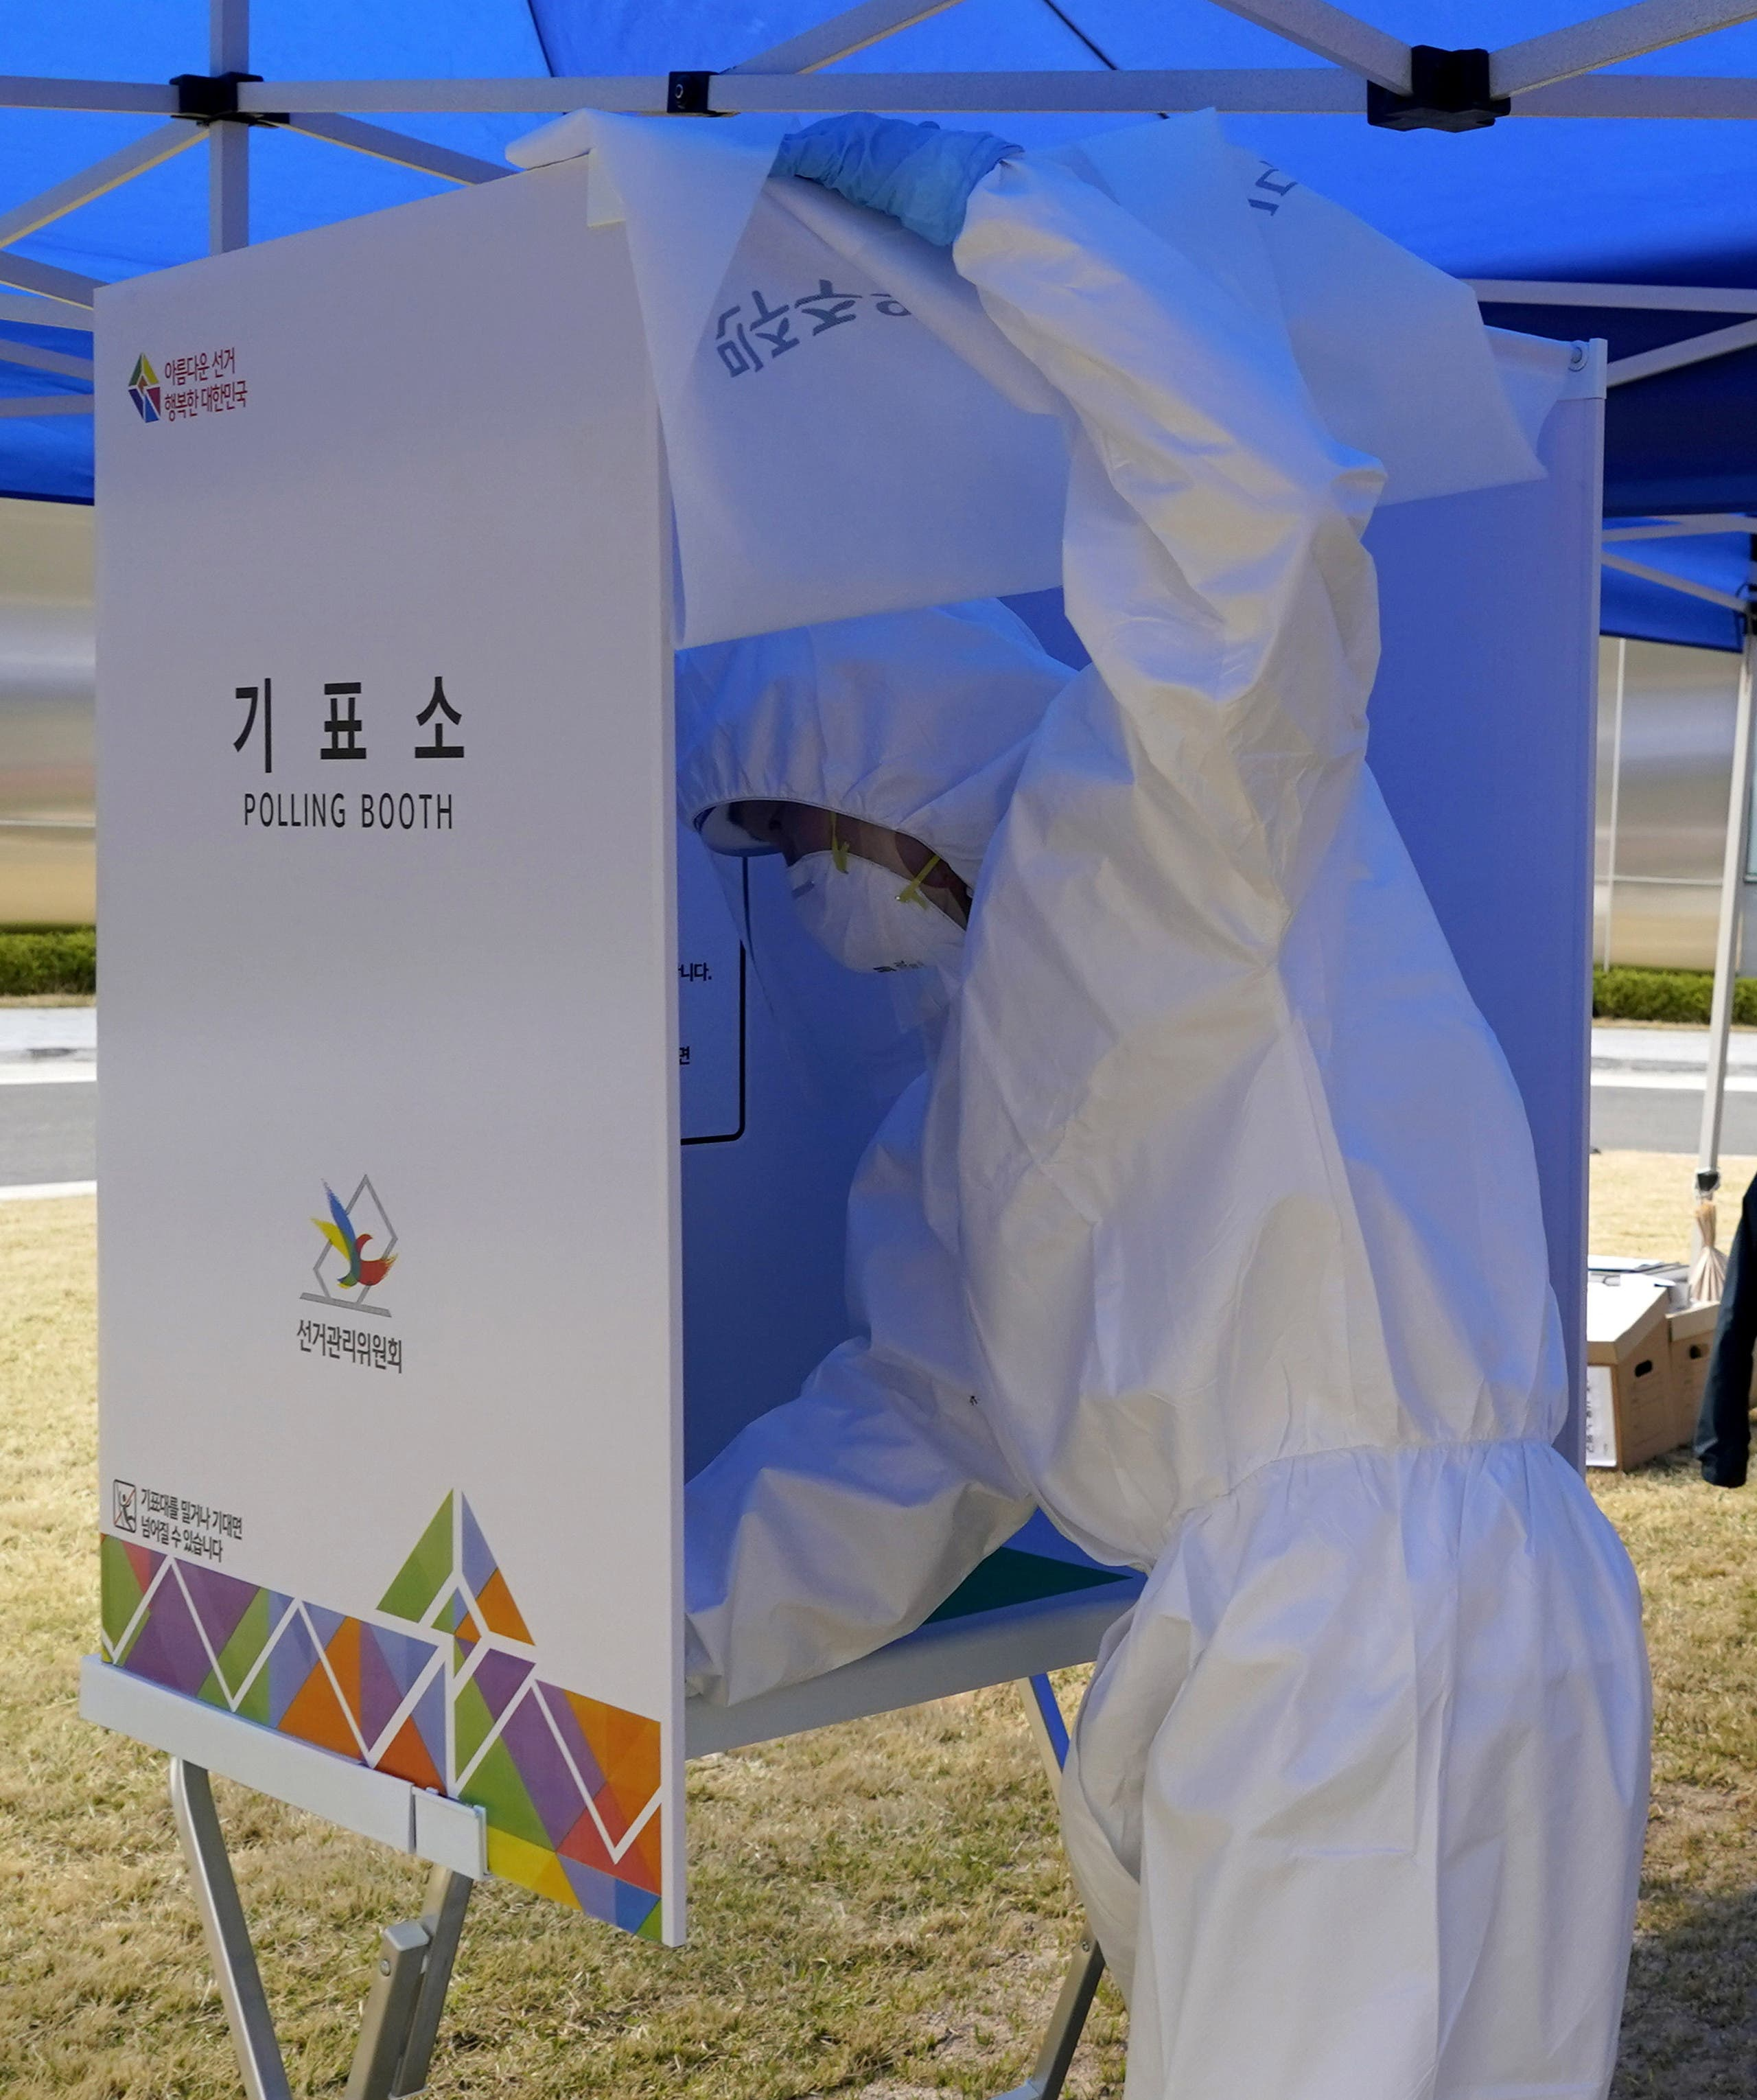 An election officer in protective gear disinfects a polling booth before South Korean patients affected with the coronavirus disease (COVID-19) arrive to cast their ballots for the parliamentary election at a polling station set up at a quarantine center in Yongin, South Korea, April 11, 2020.